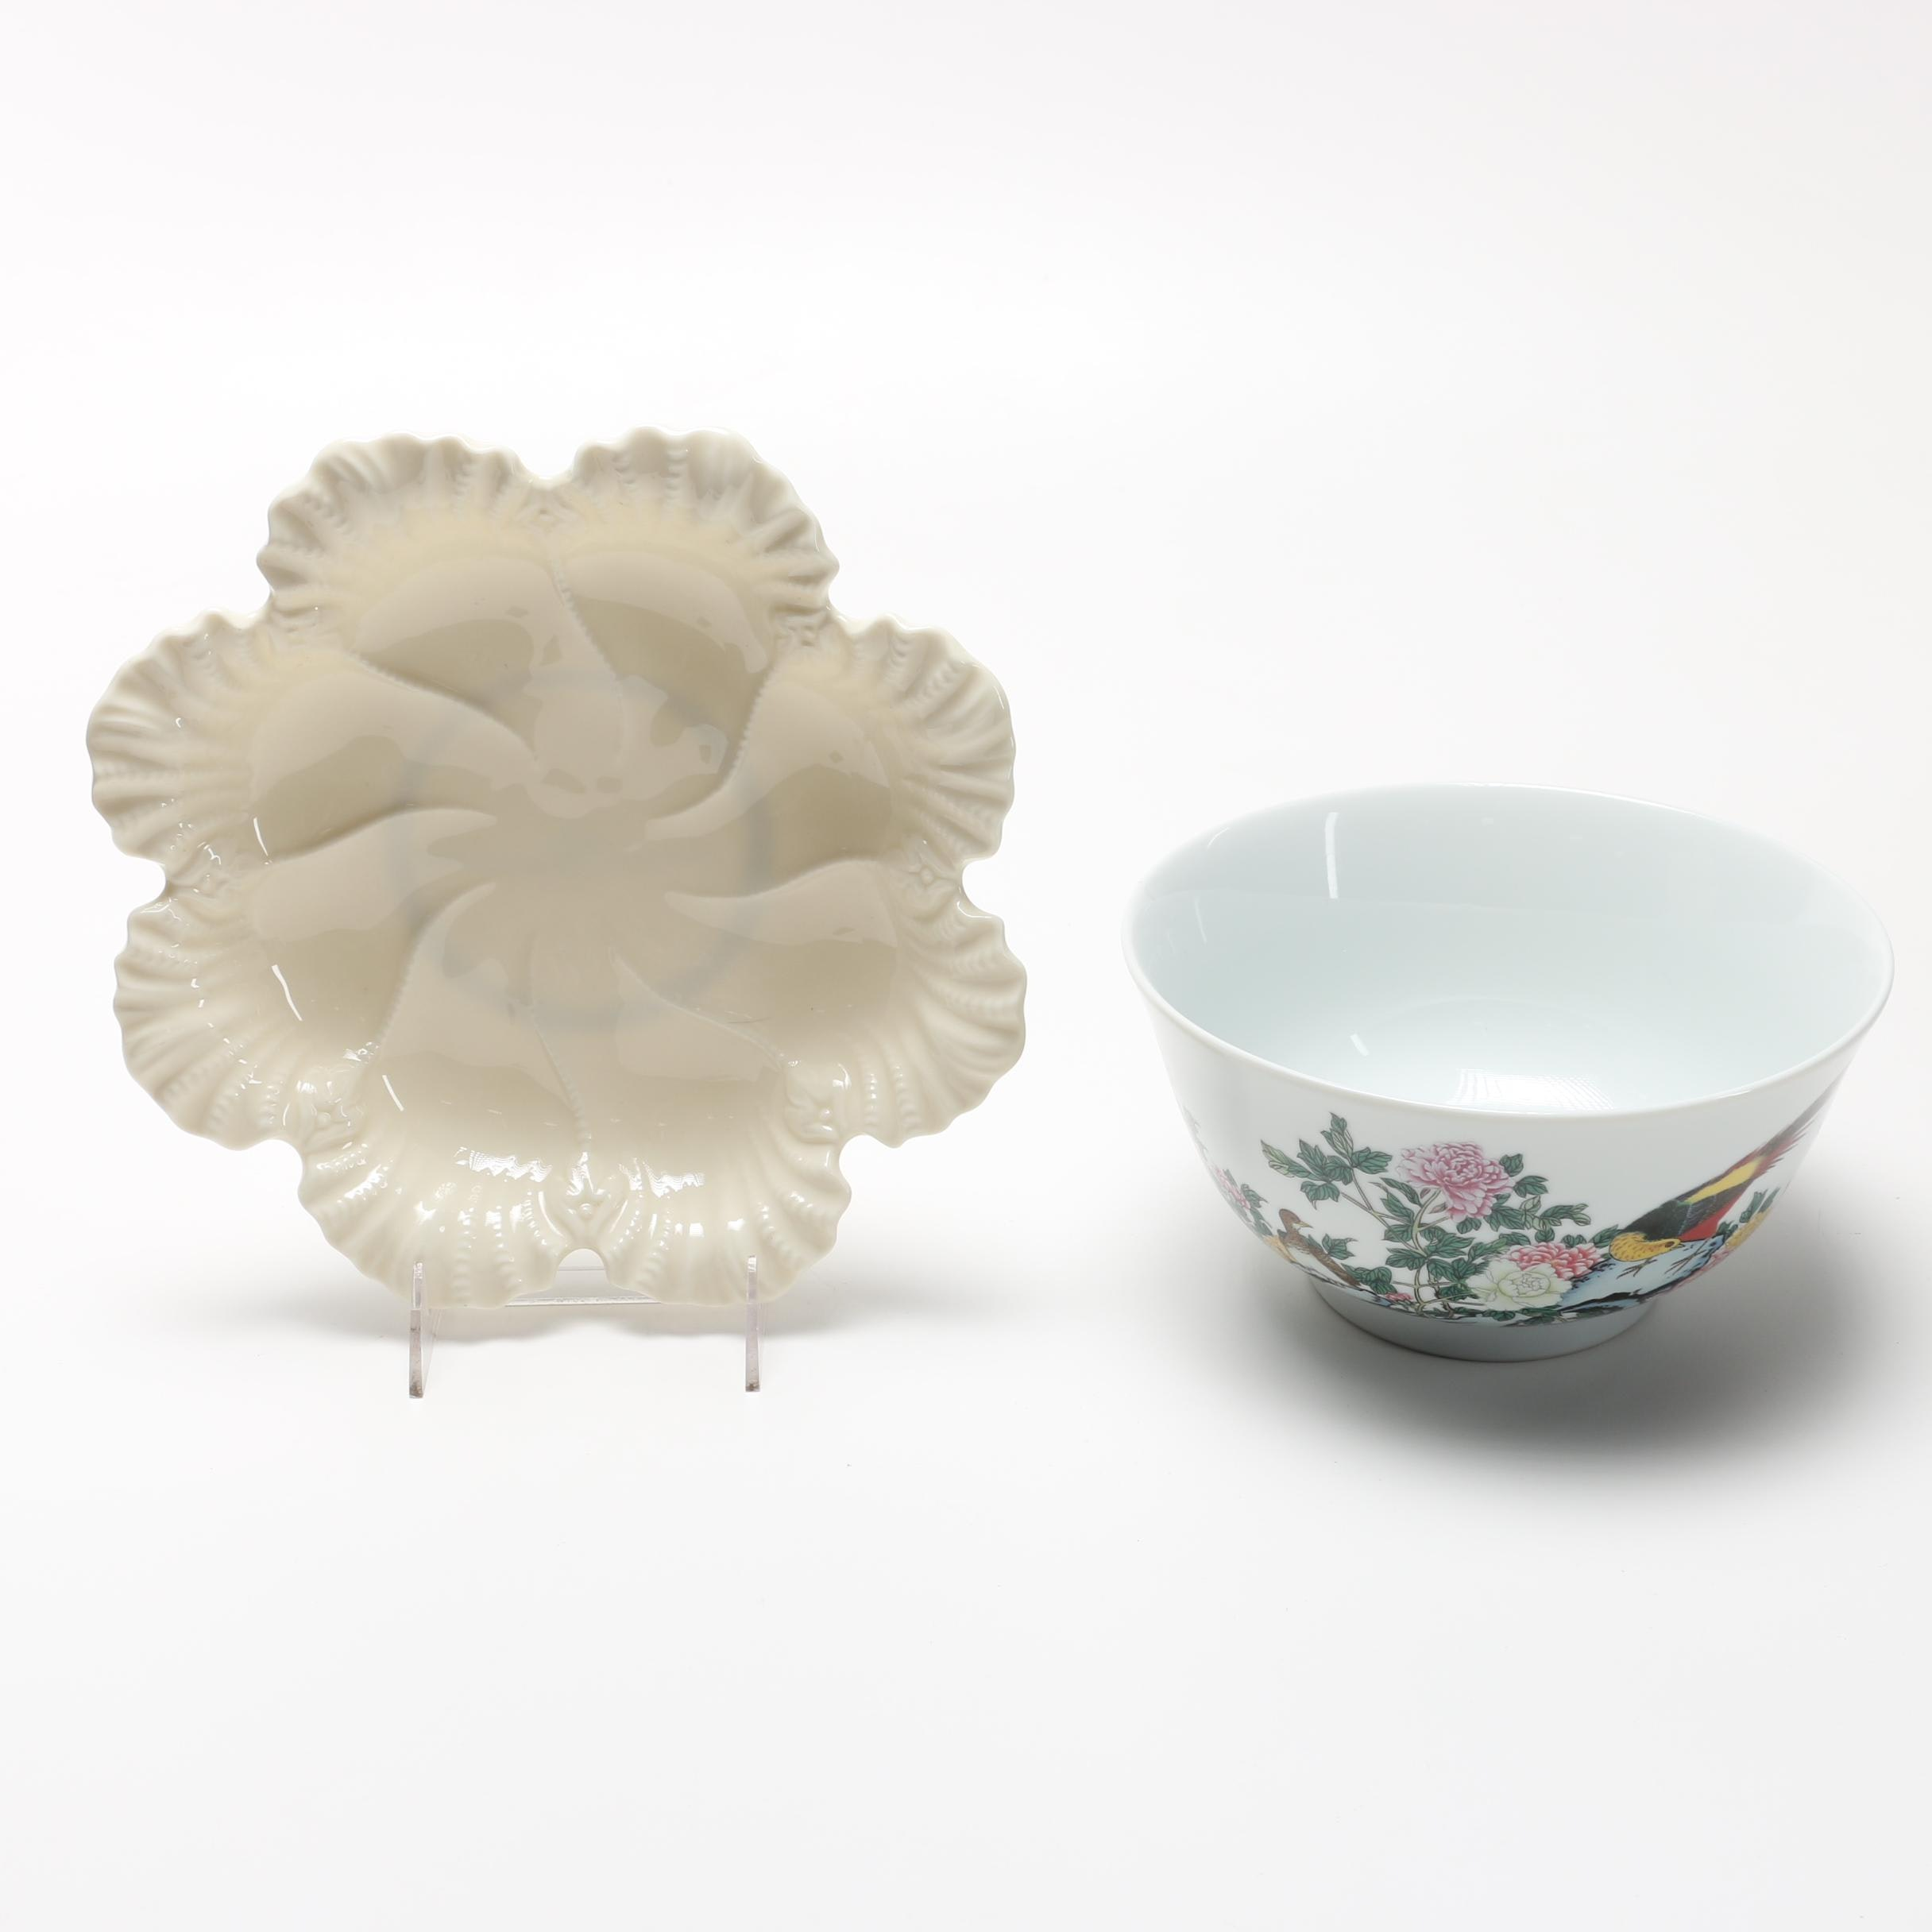 Lenox Dish and Bowl